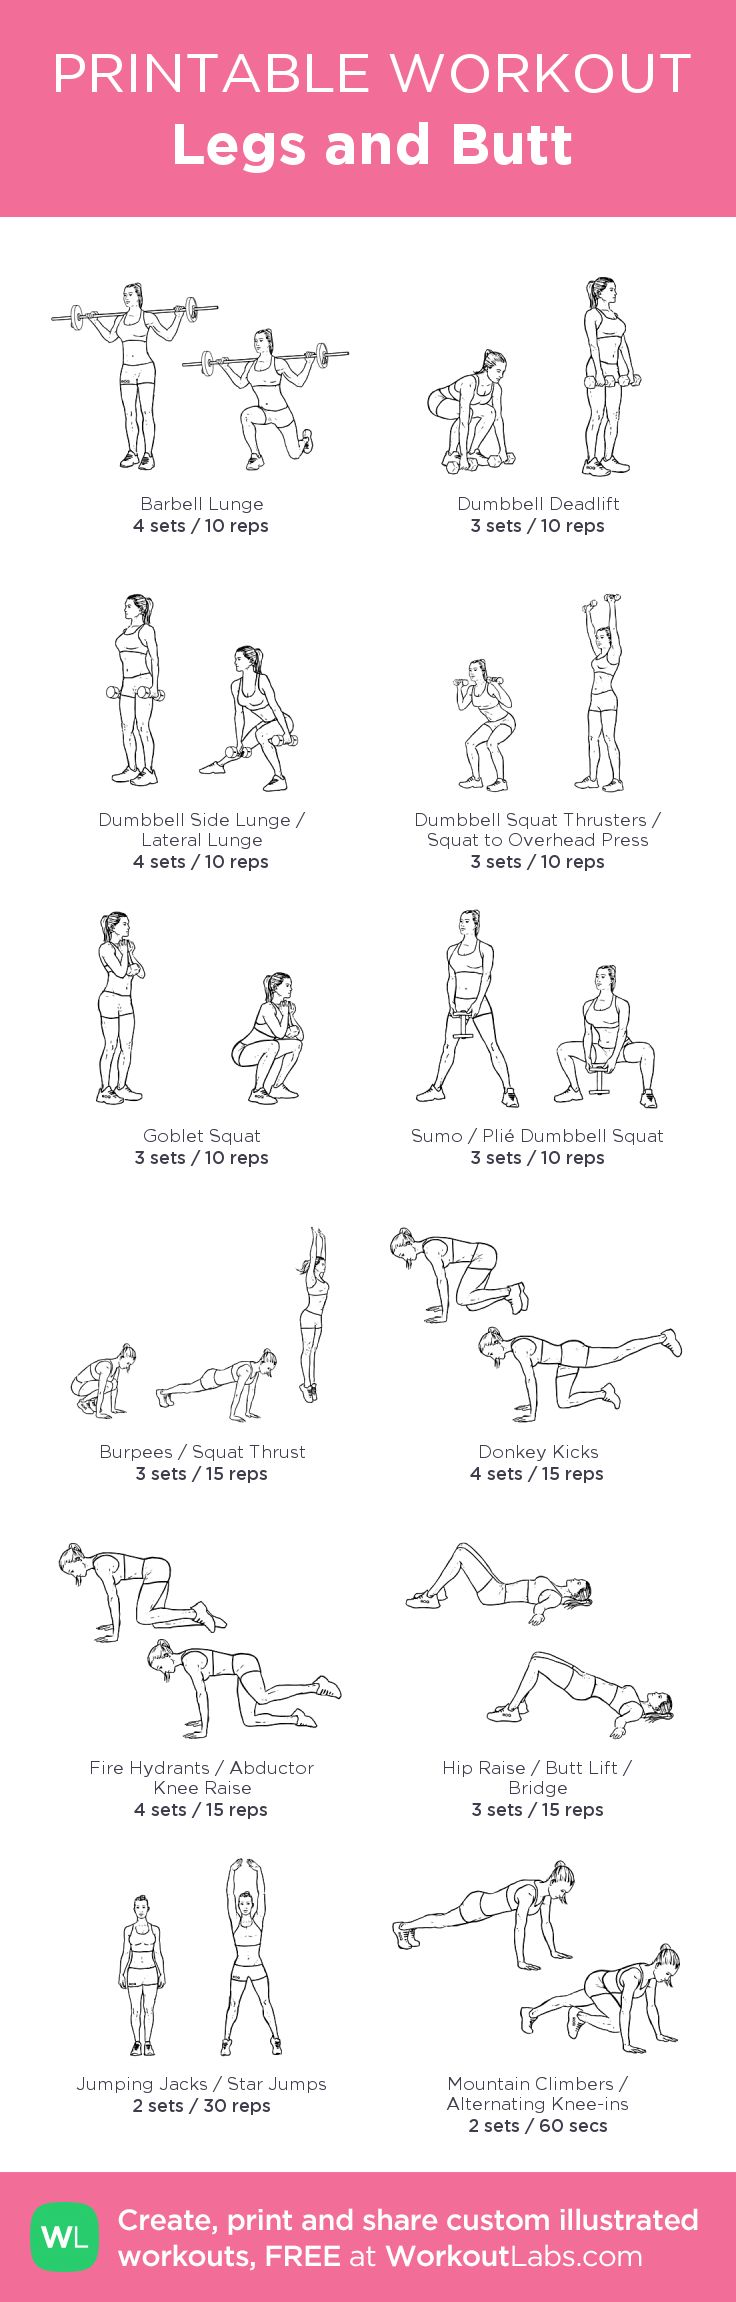 Legs and Butt –my custom workout created at WorkoutLabs.com • Click through to download as printable PDF! #customworkout